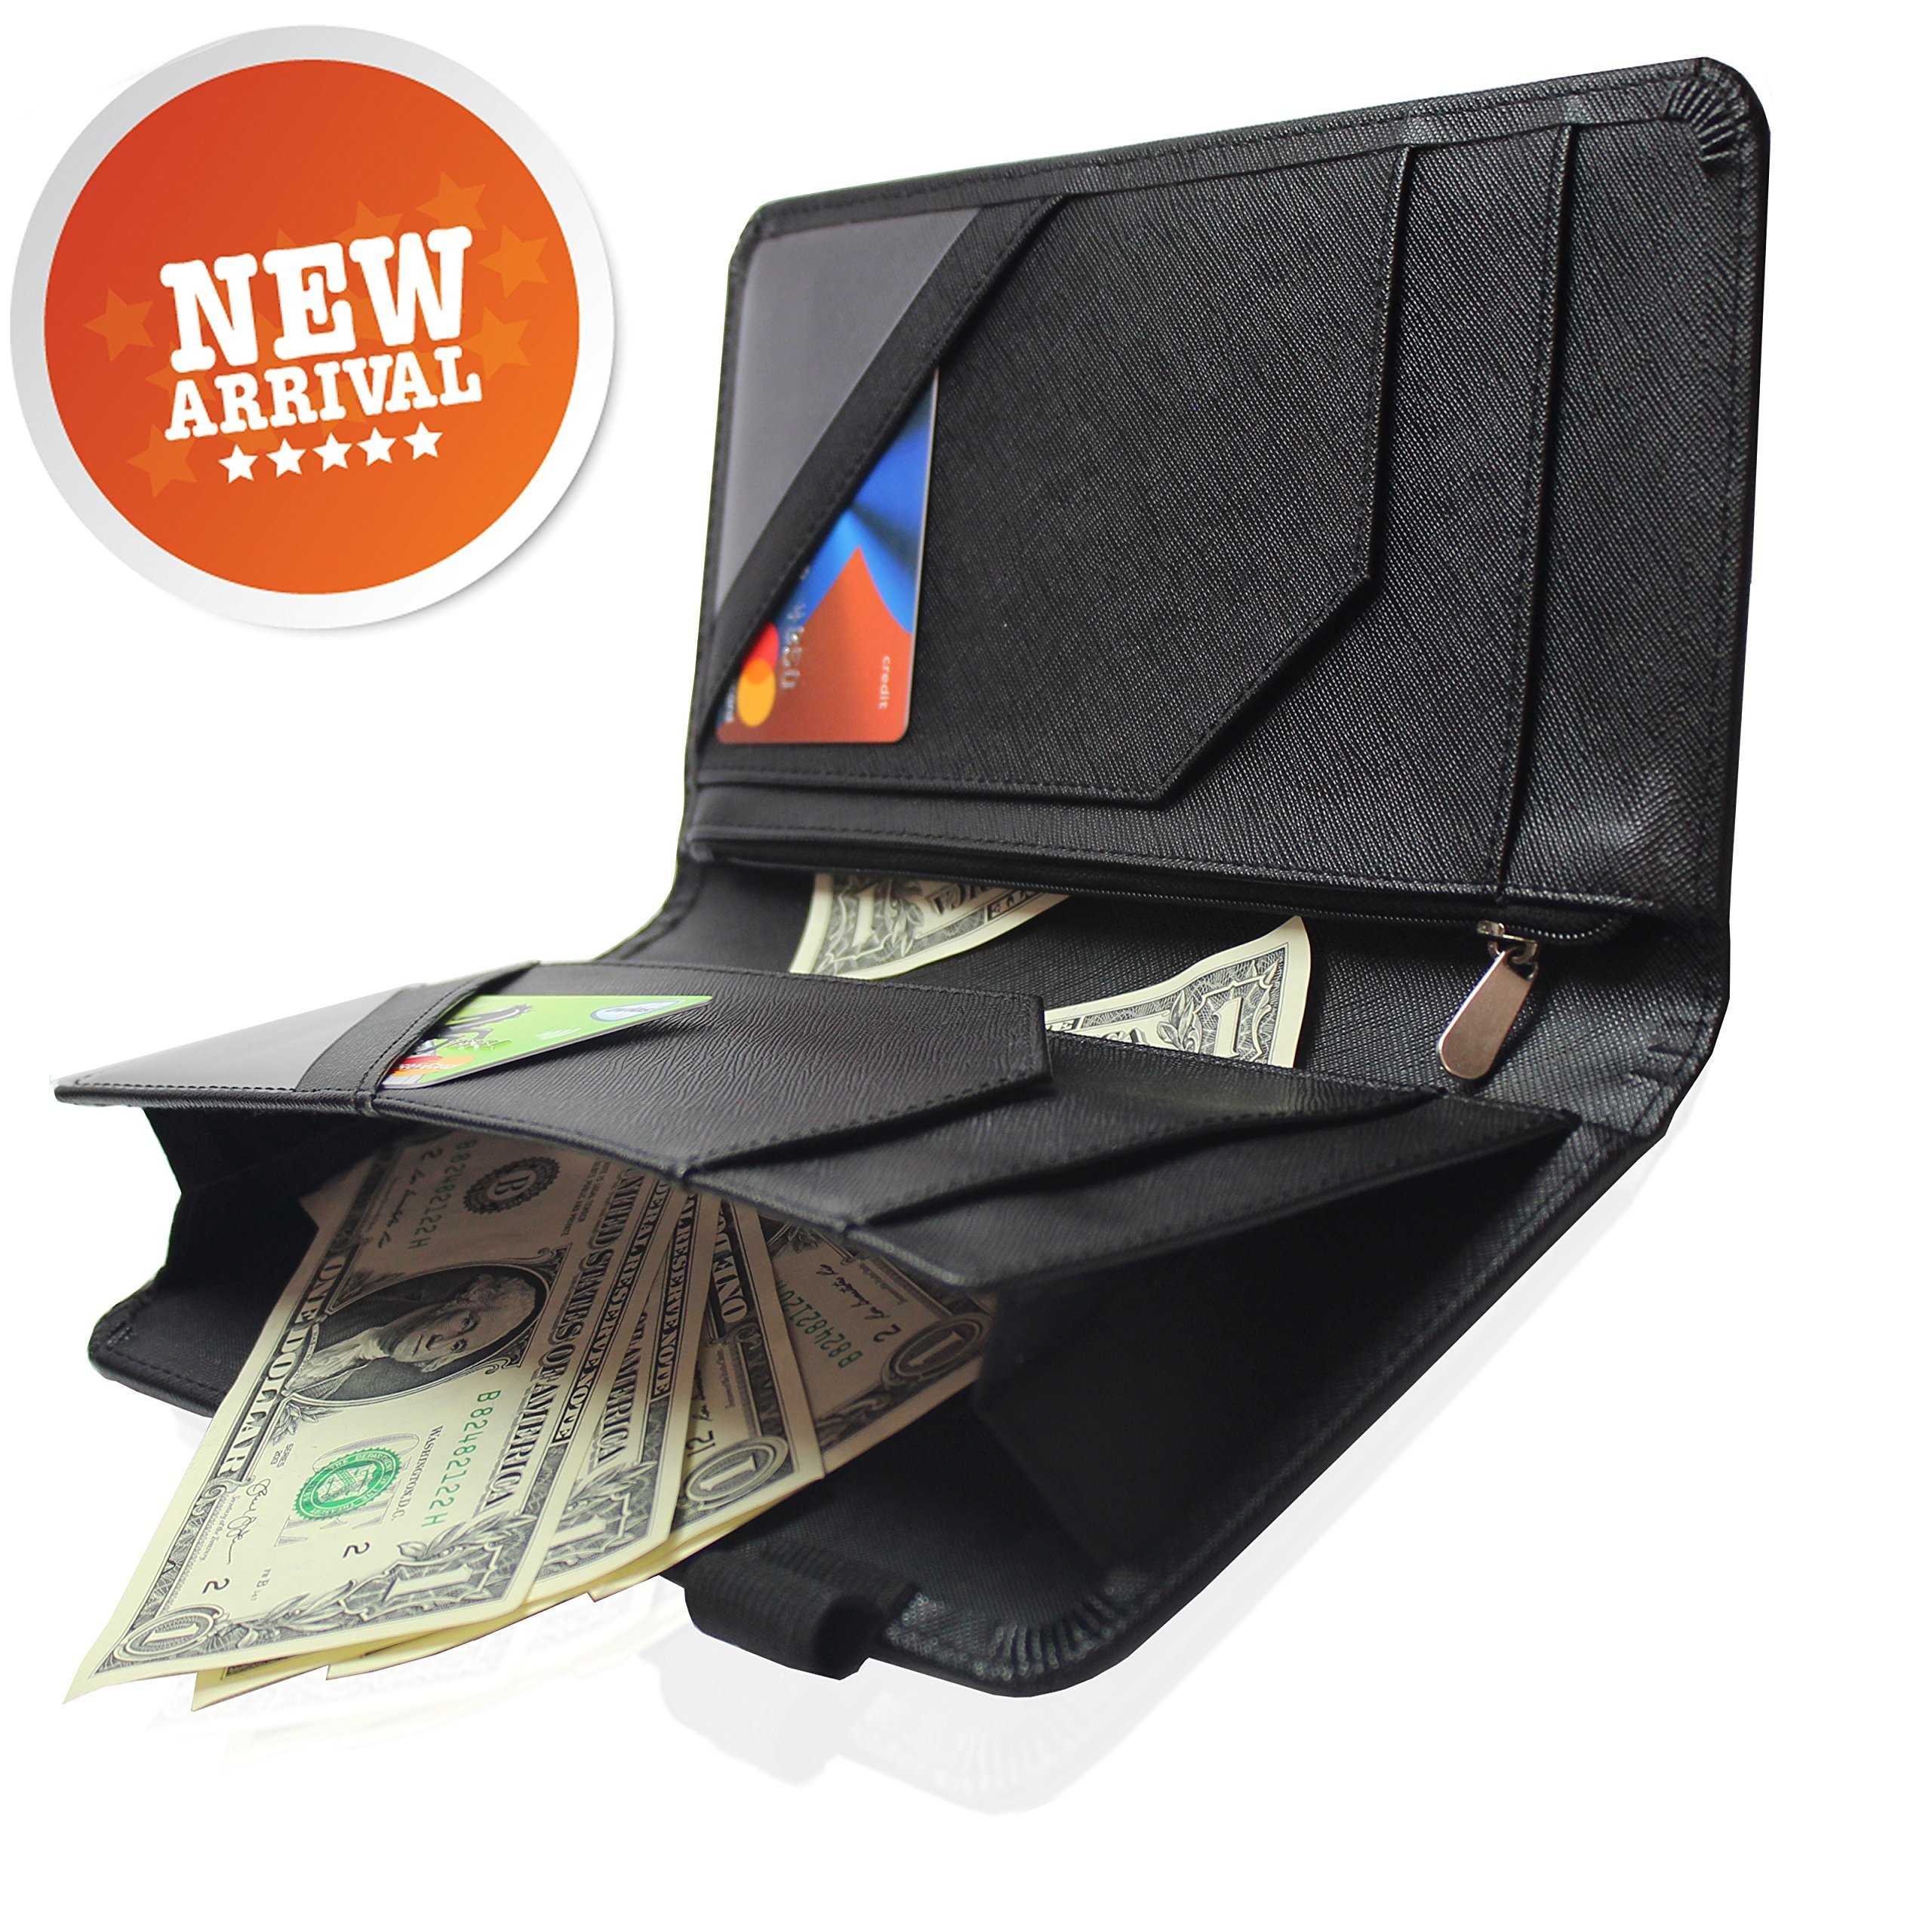 Waitress Waiter Server Book Organizer Wallet for Waitstaff with Zipper Pocket Black 5x9 12 Money Pockets with Pen Holder Fits Restaurant Guest Check Order Pad & Apron By Ogalv